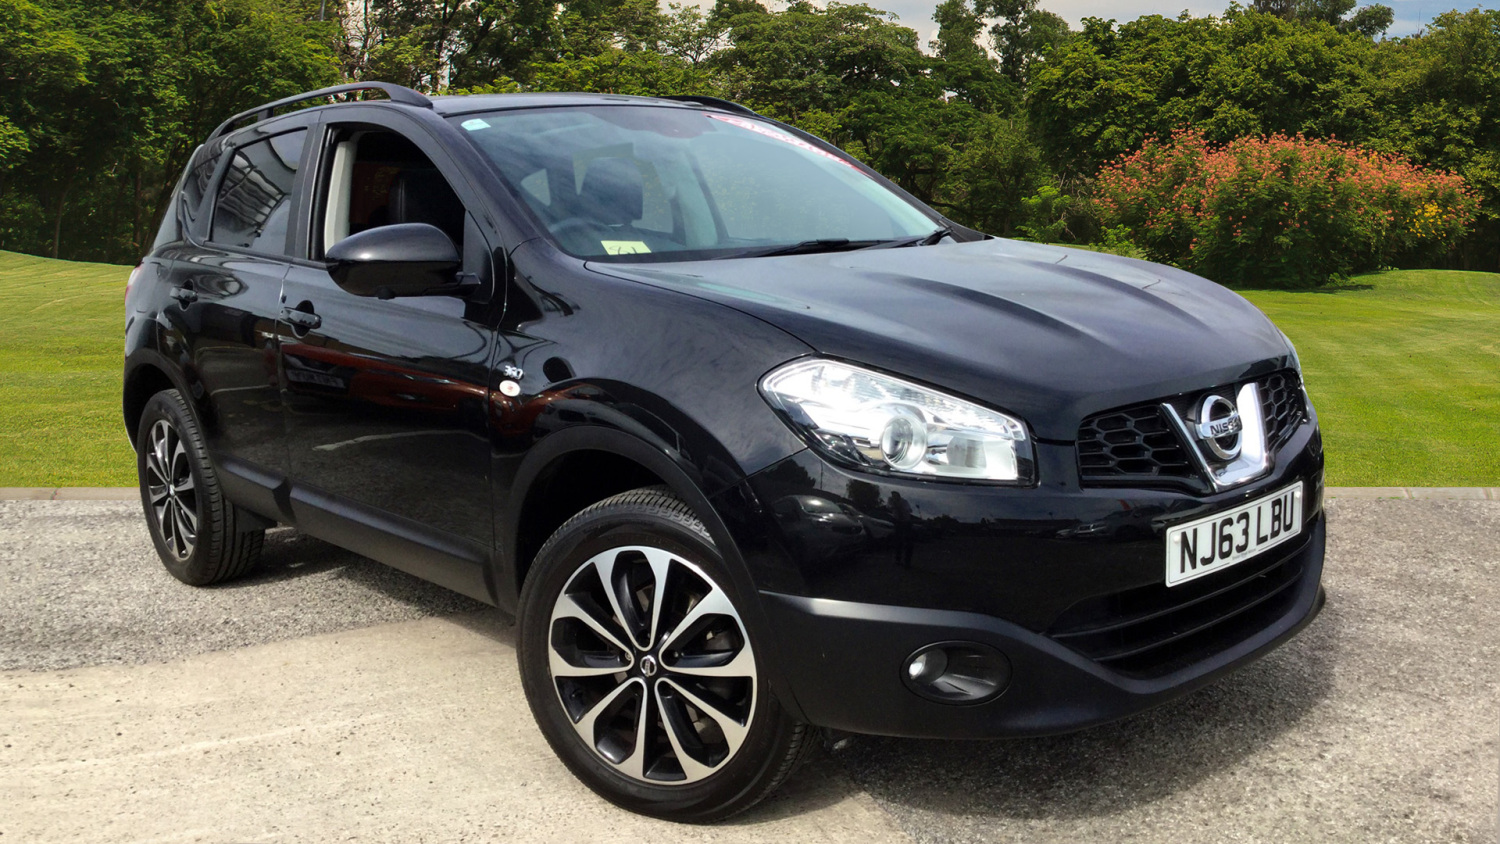 used nissan qashqai cars for sale bristol street motors